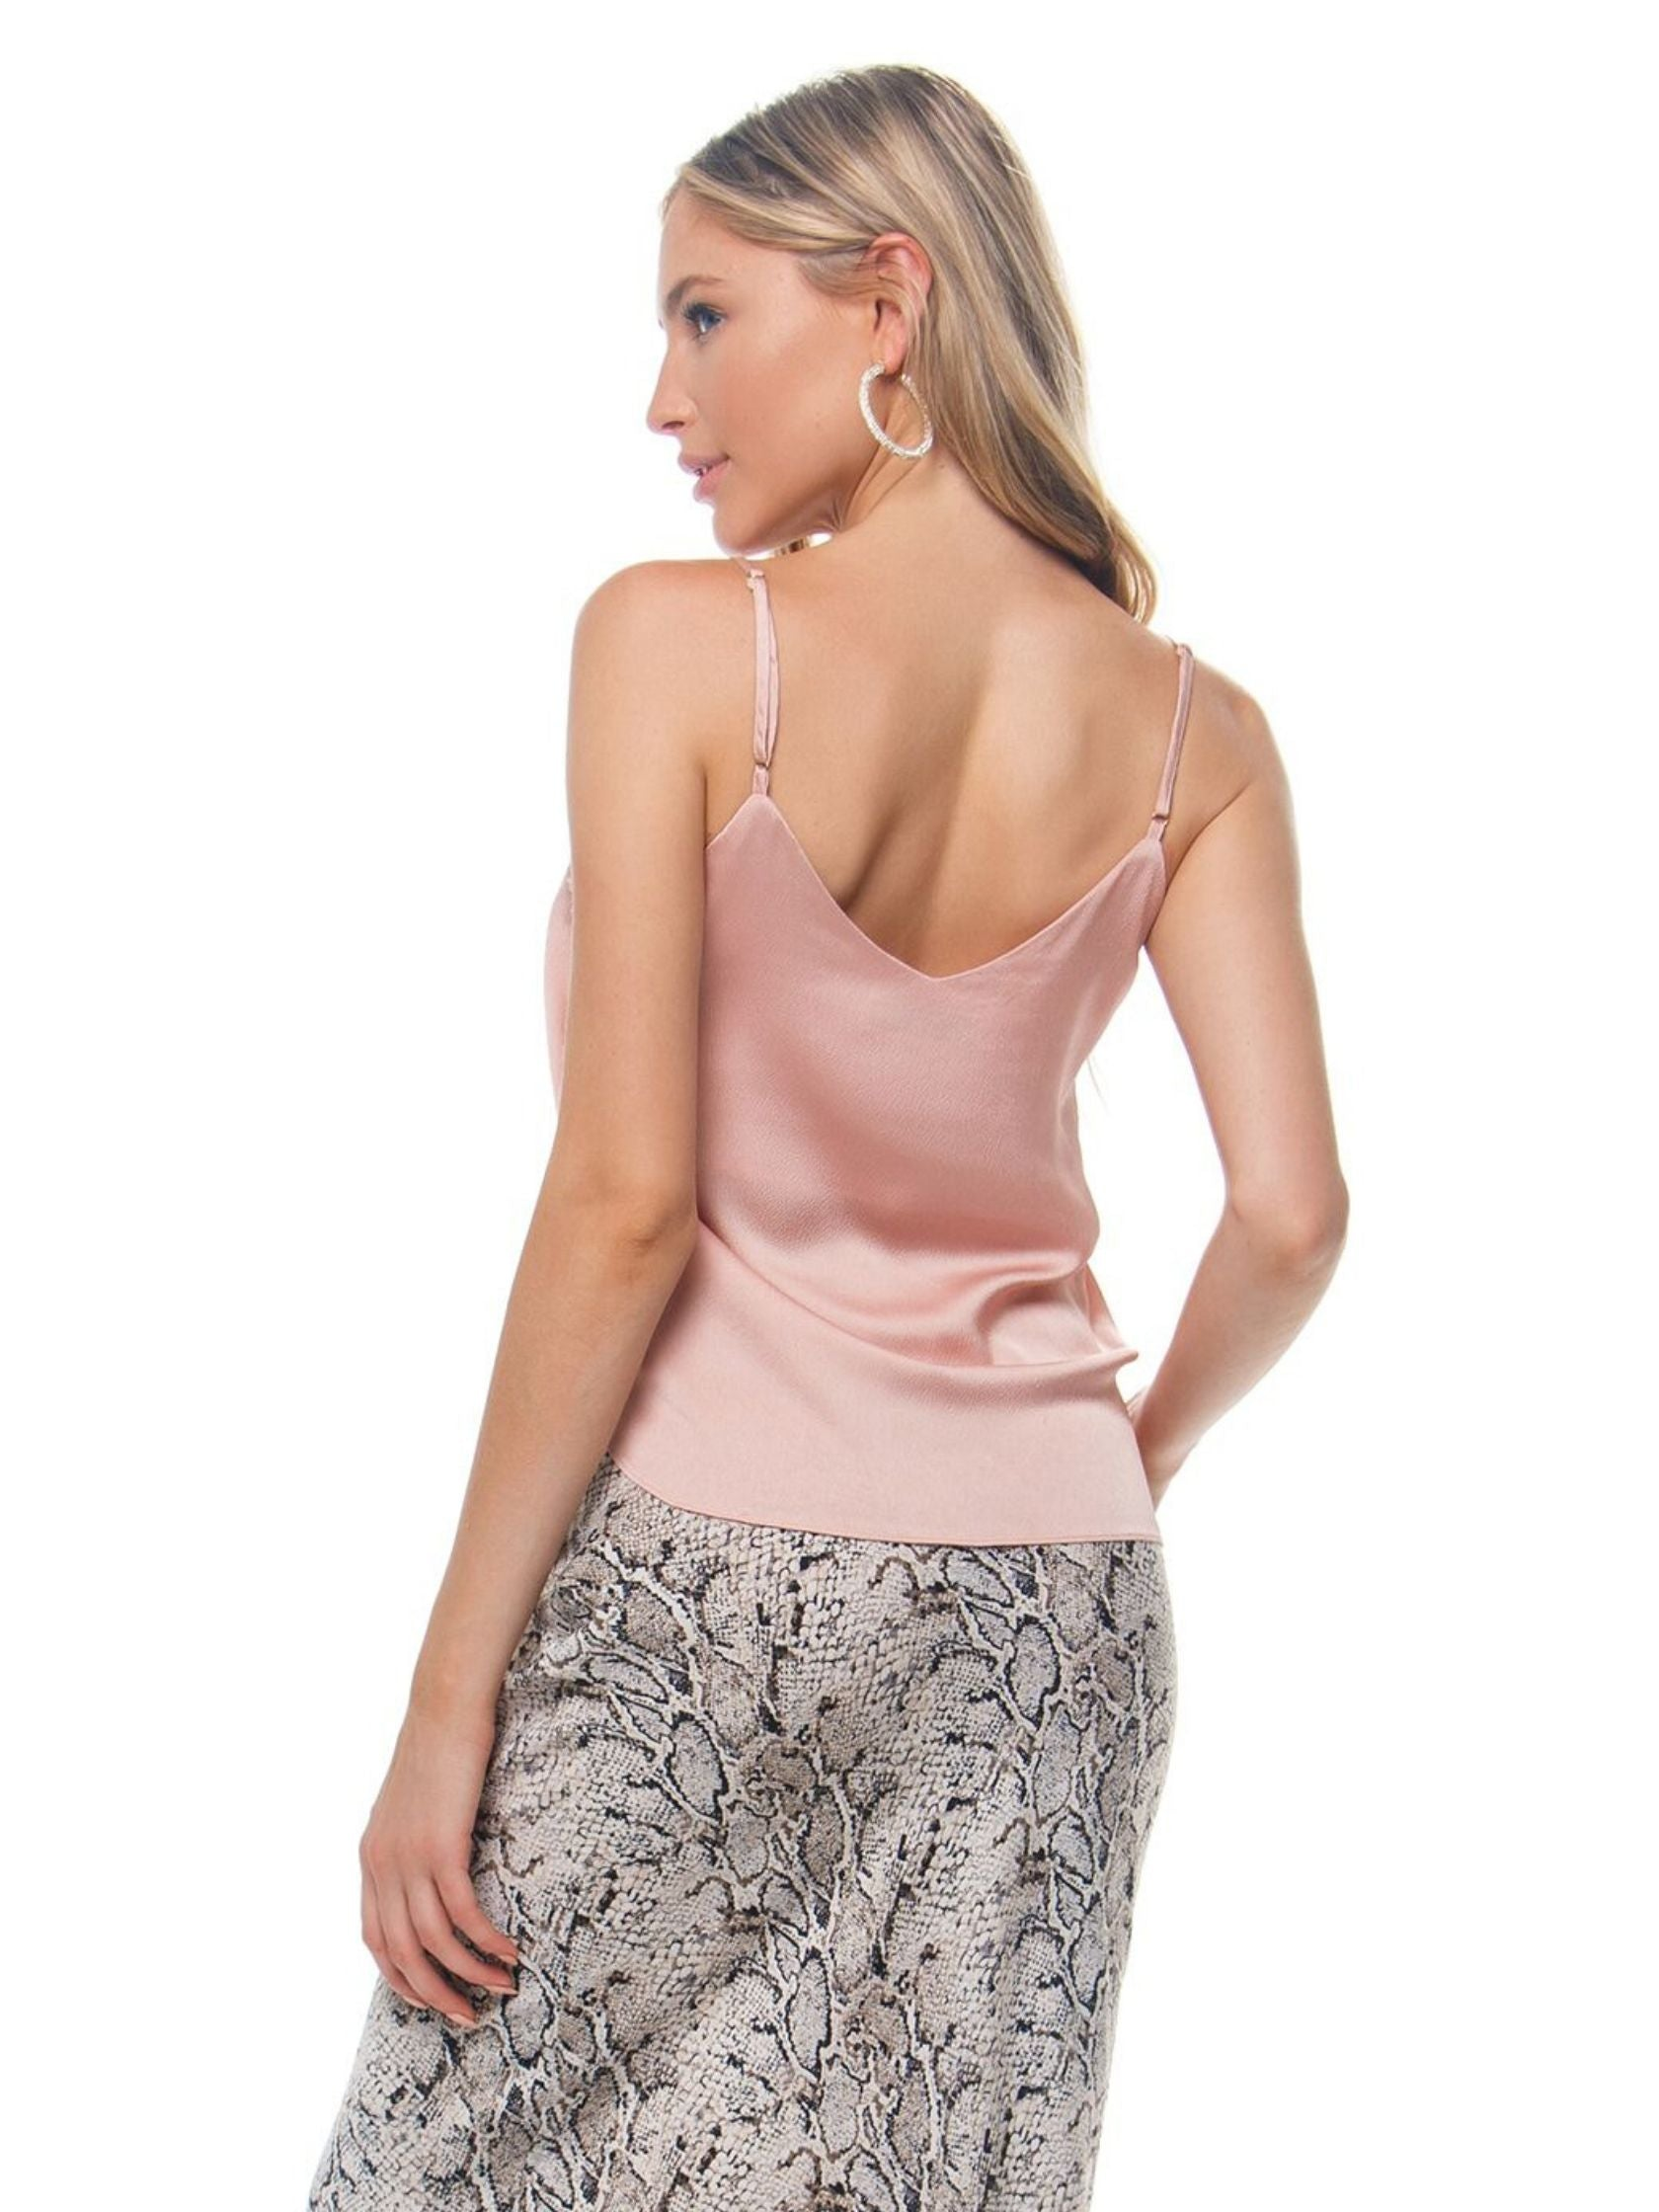 Women outfit in a cami rental from Heartloom called Cooper Cami